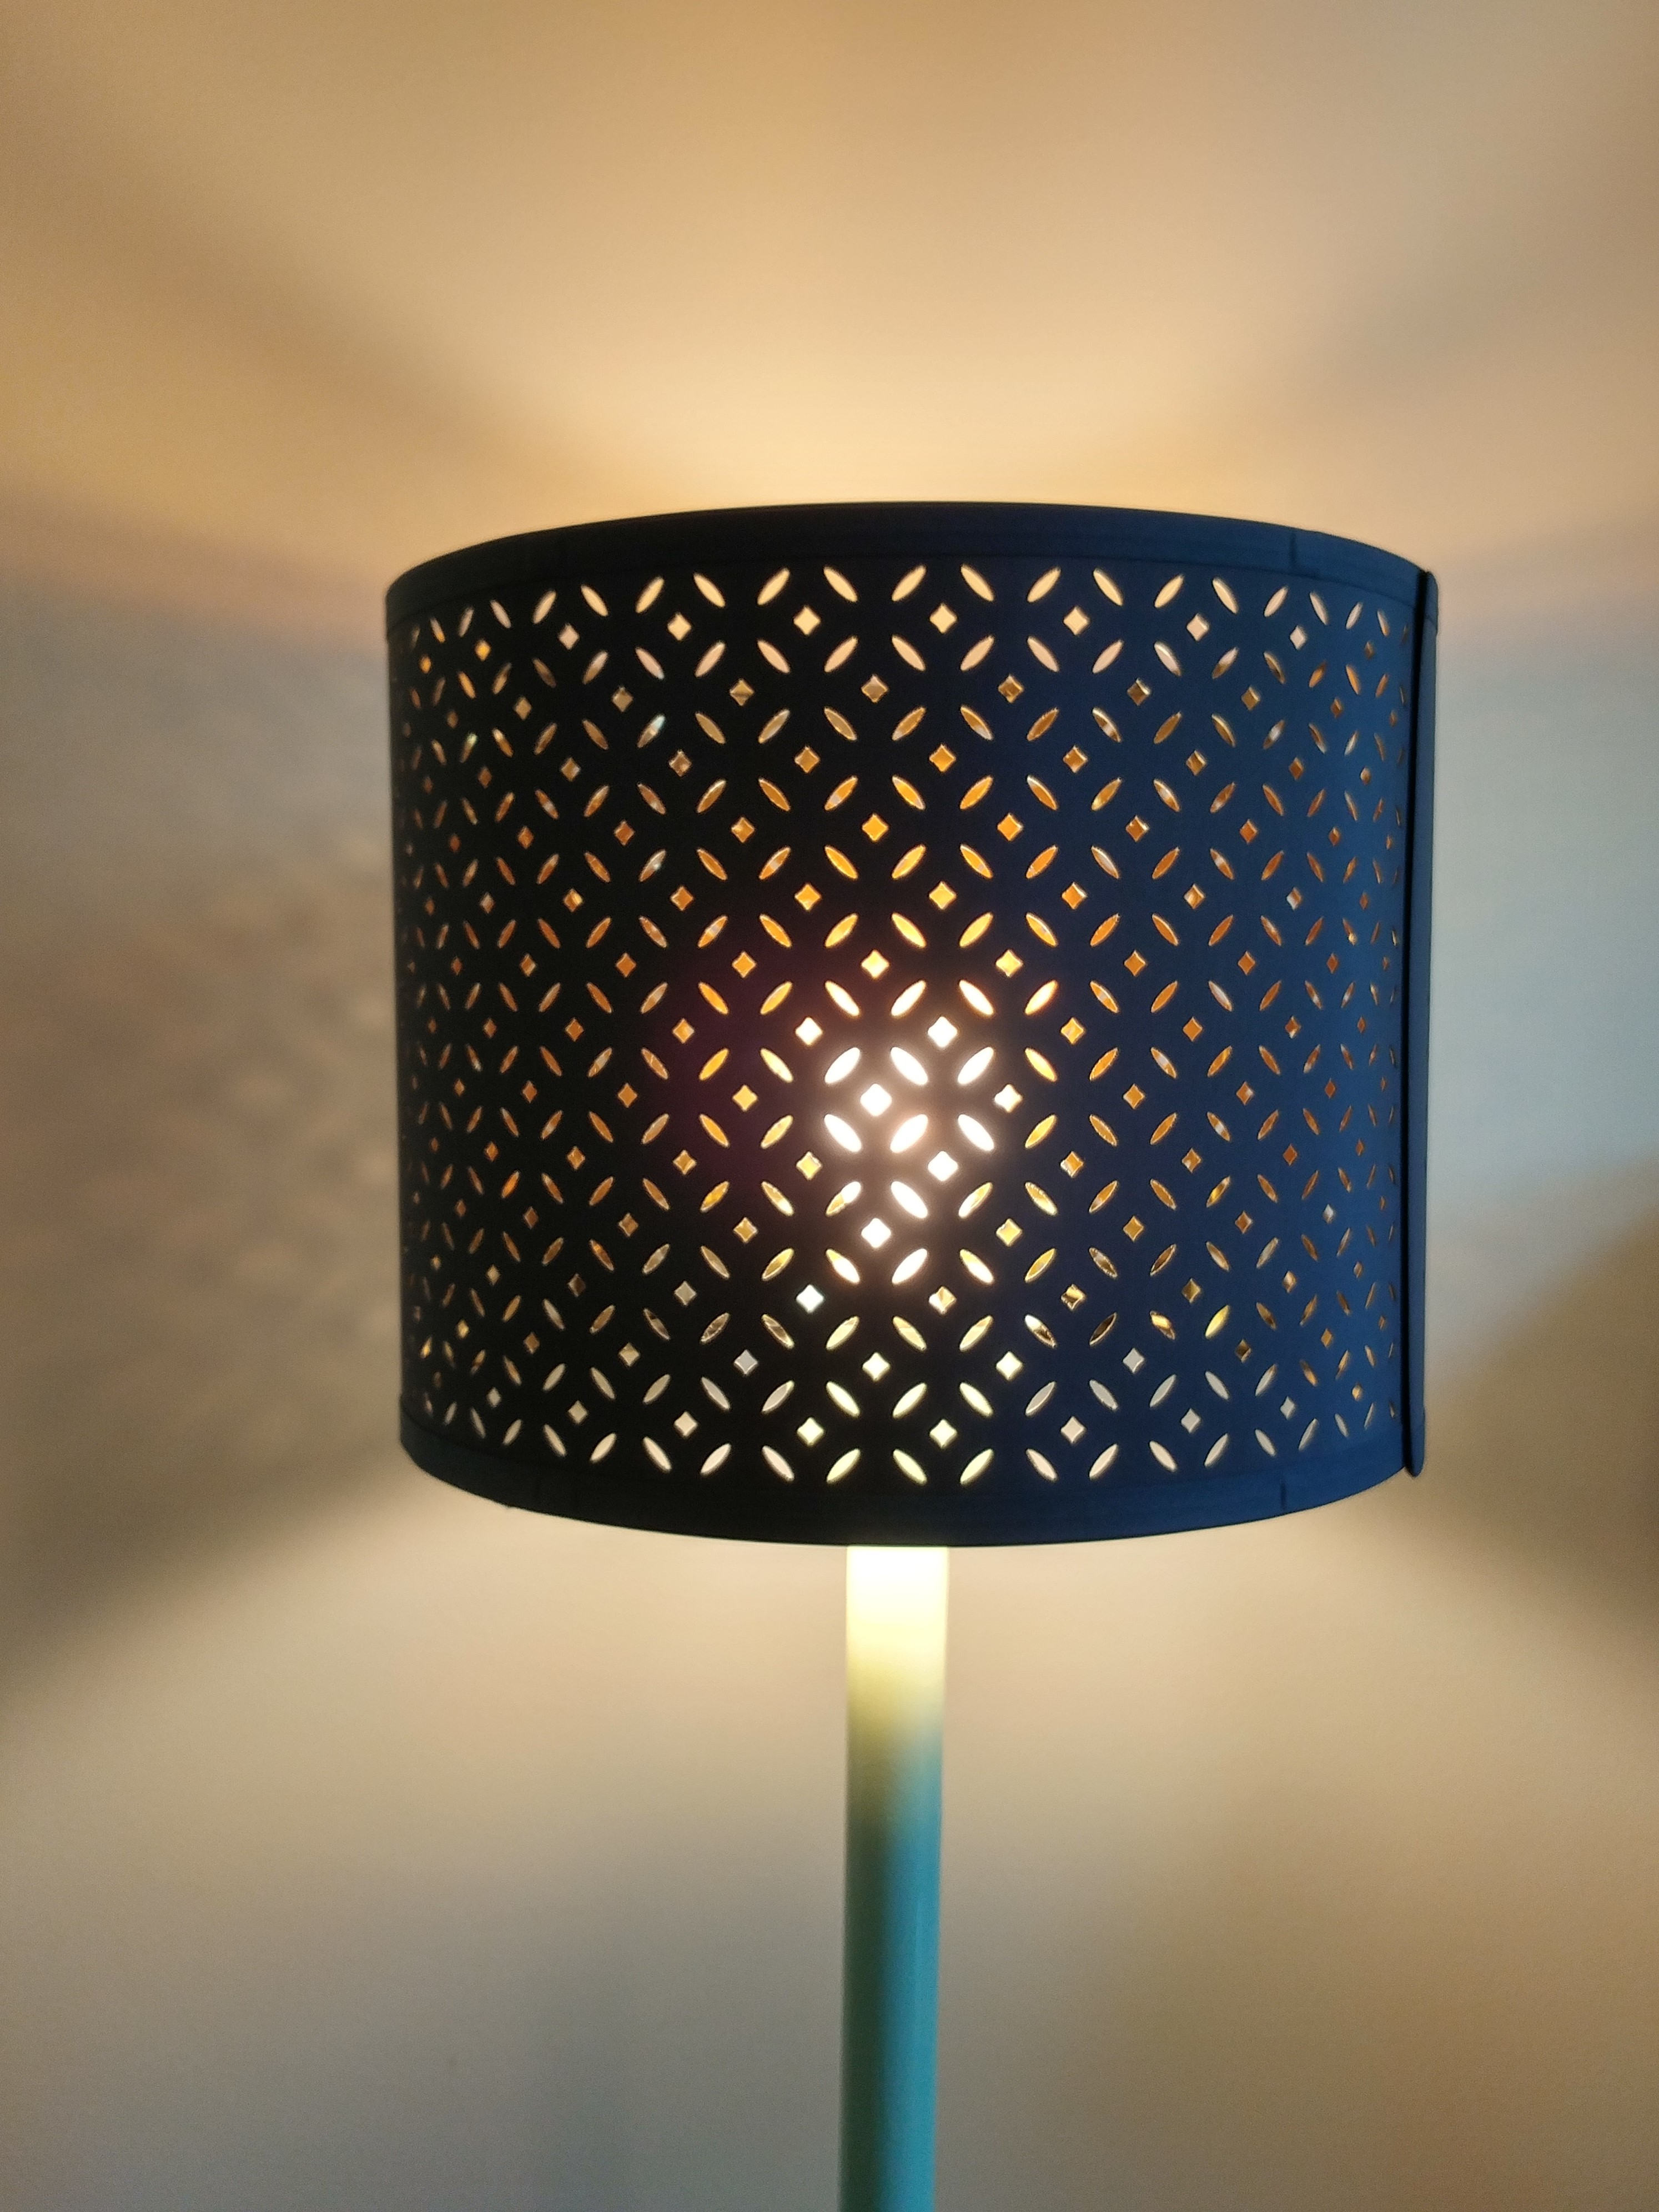 Ikea Nymo Lamp Shade Reviews In Lighting Fans Chickadvisor